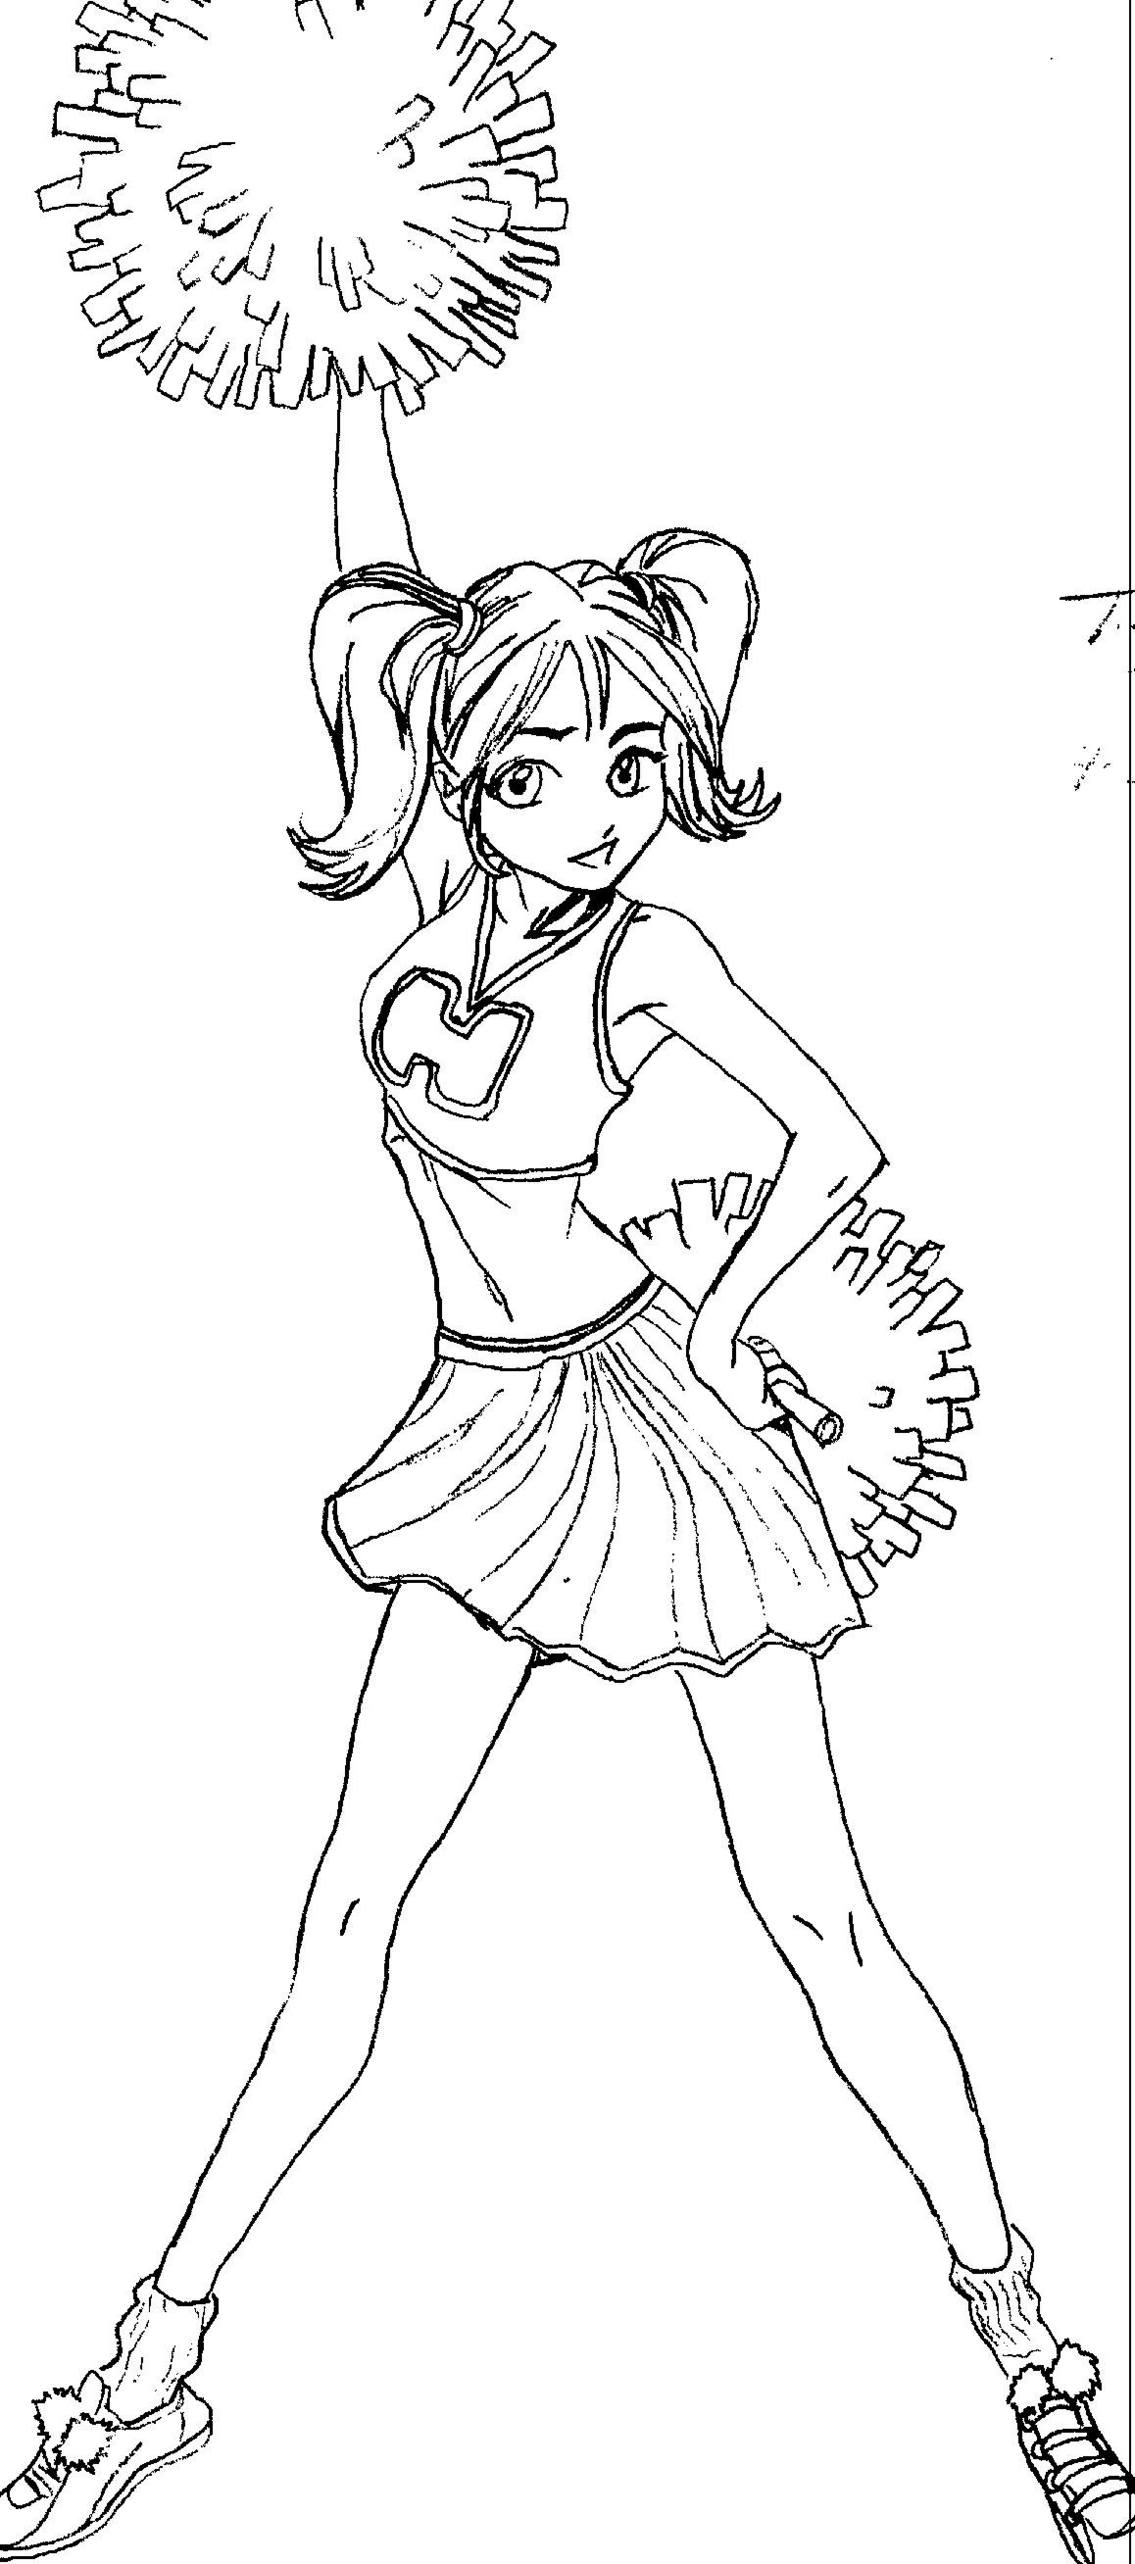 how to draw a cheerleader cheerleader drawing free download on clipartmag to cheerleader how draw a